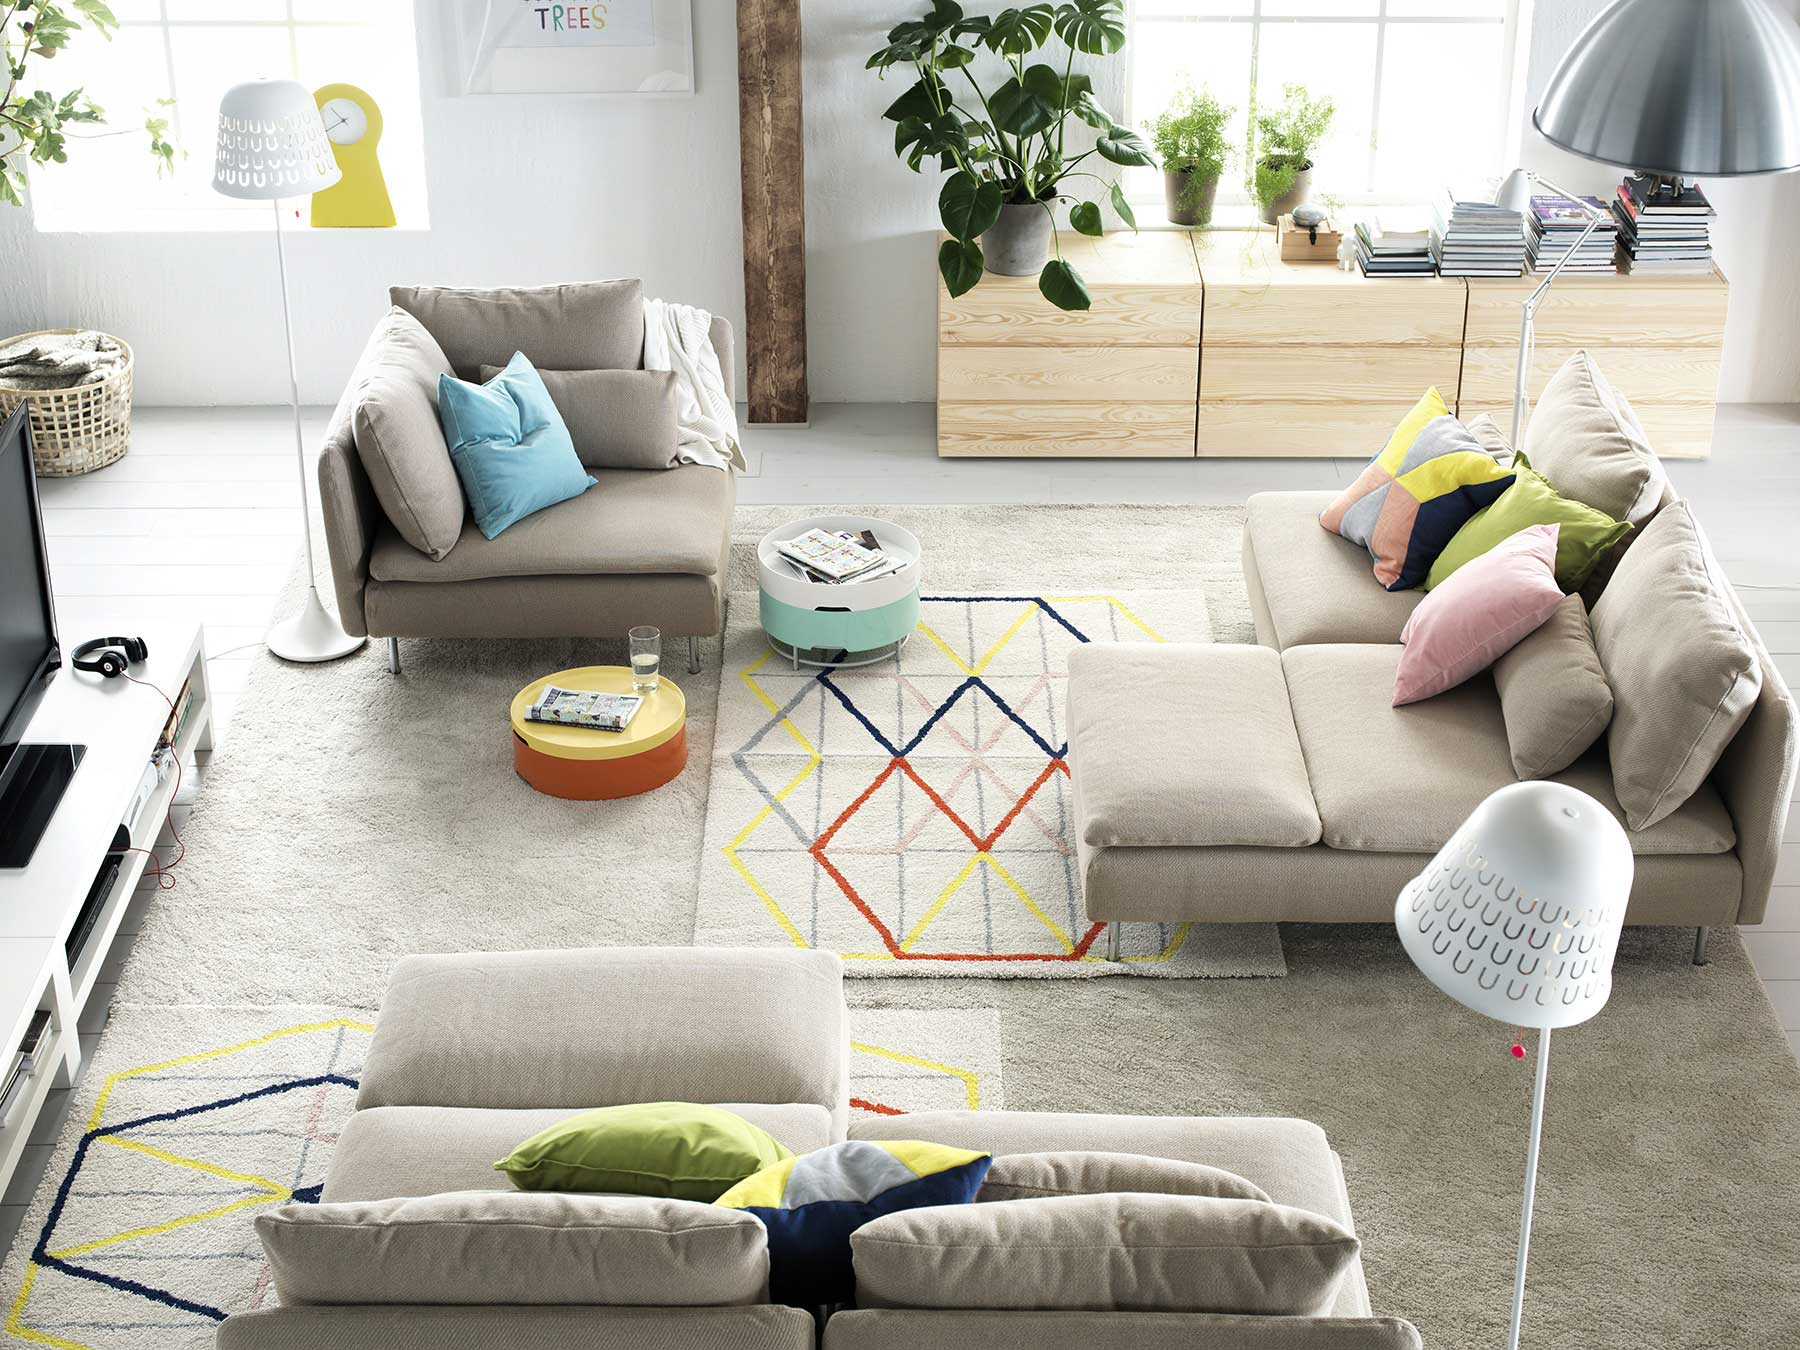 32 ambiances du catalogue ikea 2015 for Ikea room ideas 2015